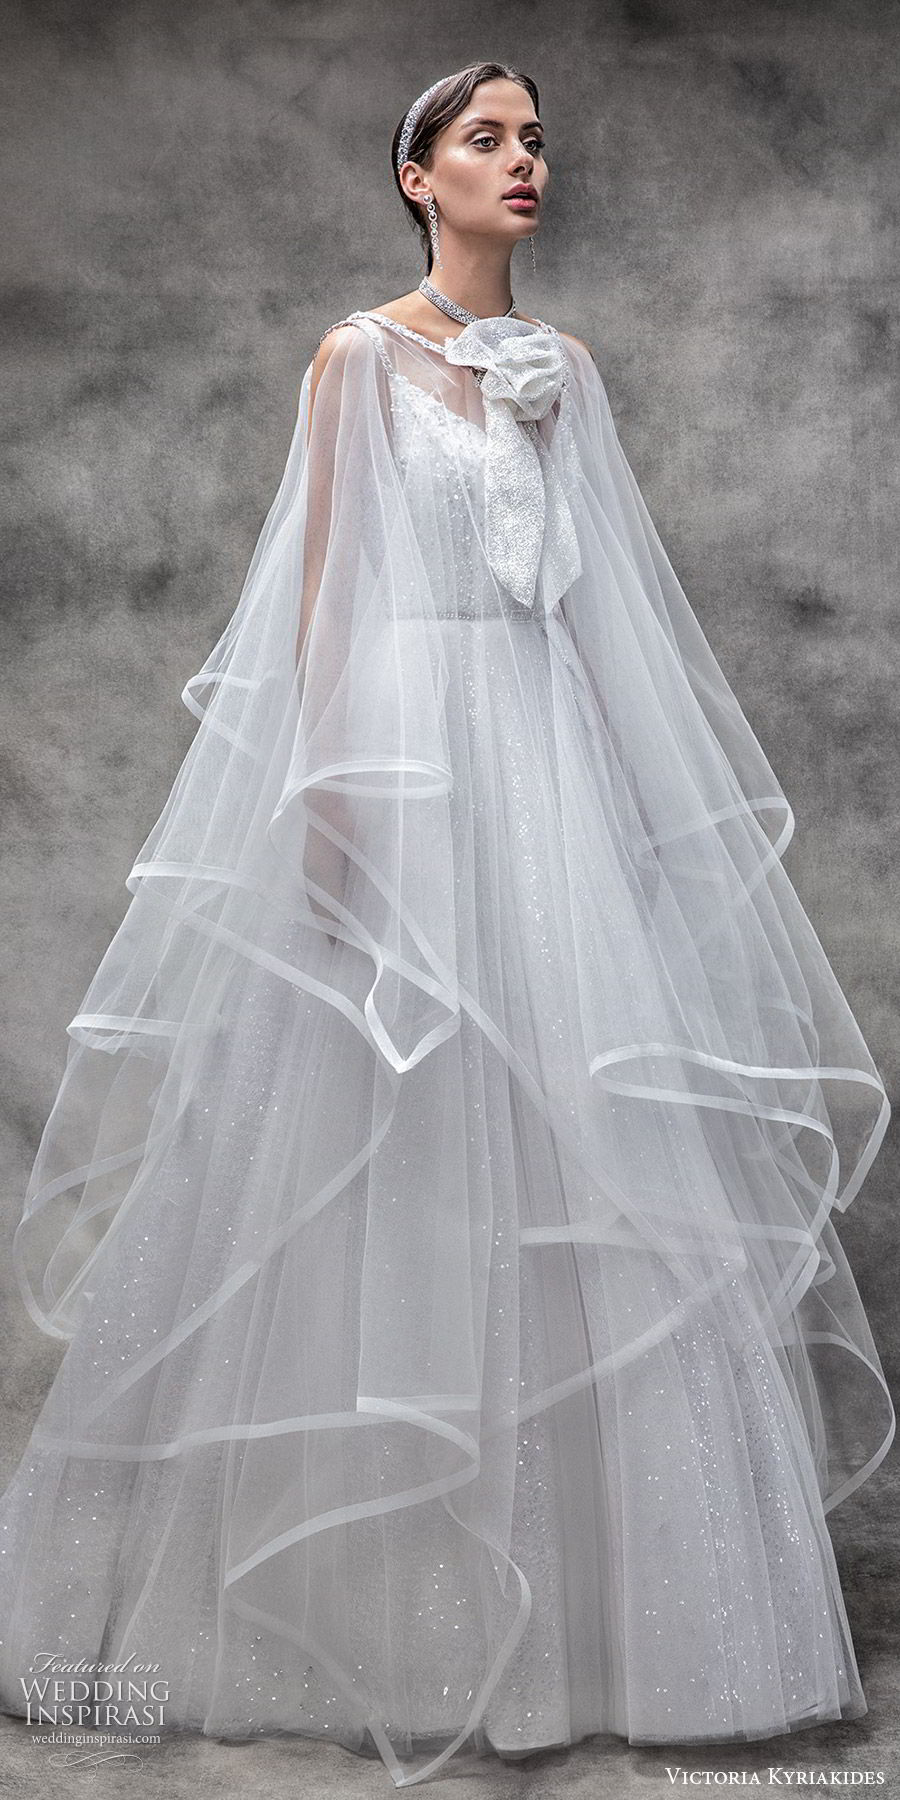 victoria kyriakides spring 2020 bridal sleeveless beaded straps v neck fully embellished a line ball gown wedding dress (11) glitzy romantic sheer cape overskirt mv